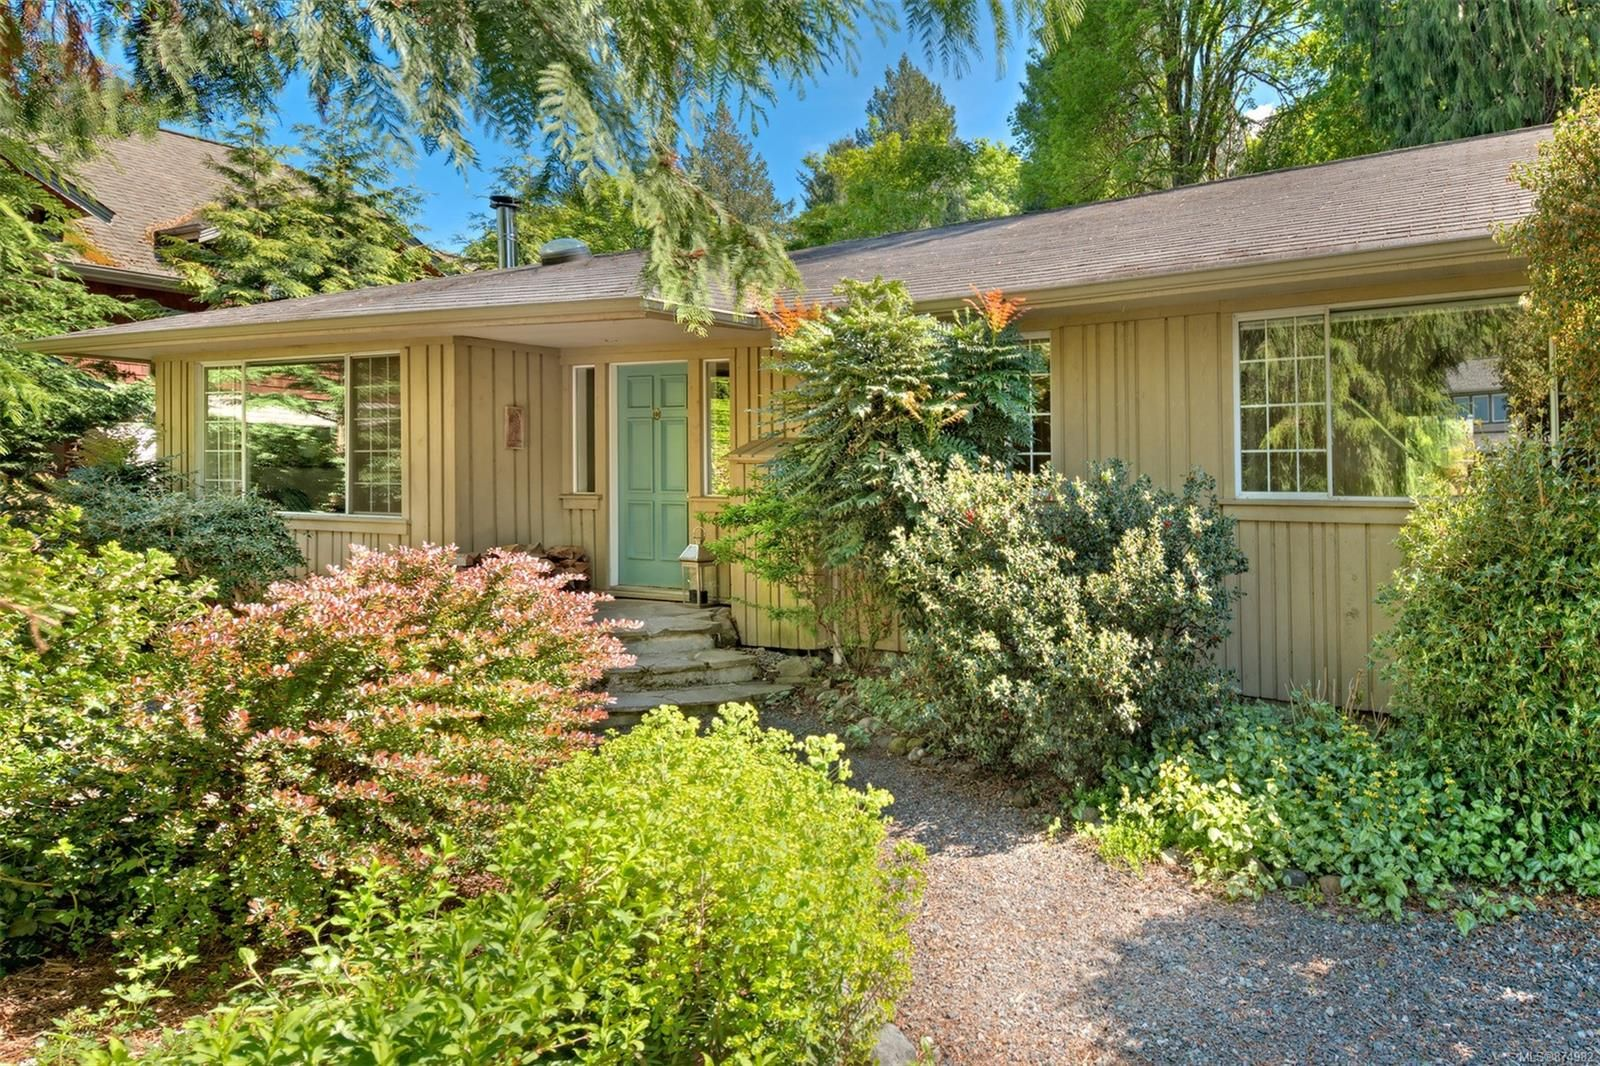 Main Photo: 118 Woodhall Pl in : GI Salt Spring House for sale (Gulf Islands)  : MLS®# 874982